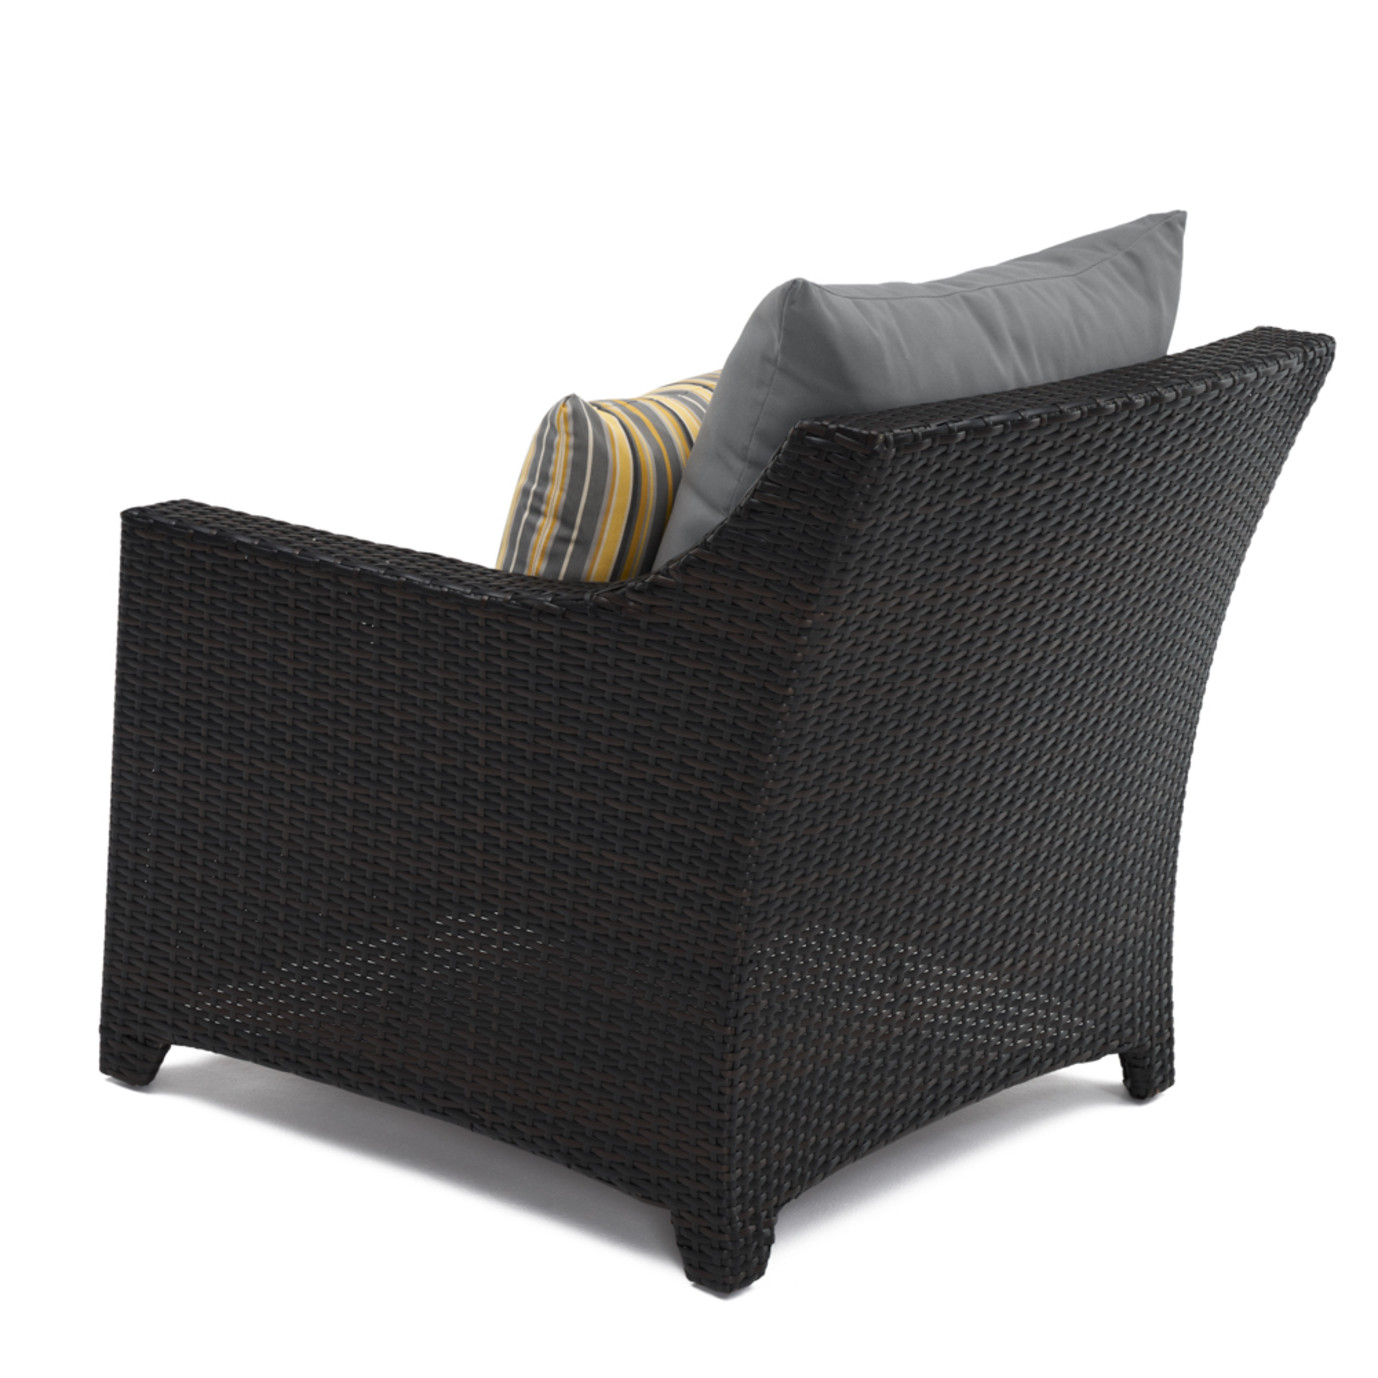 Deco™ 6pc Love and Club Seating Set - Charcoal Grey